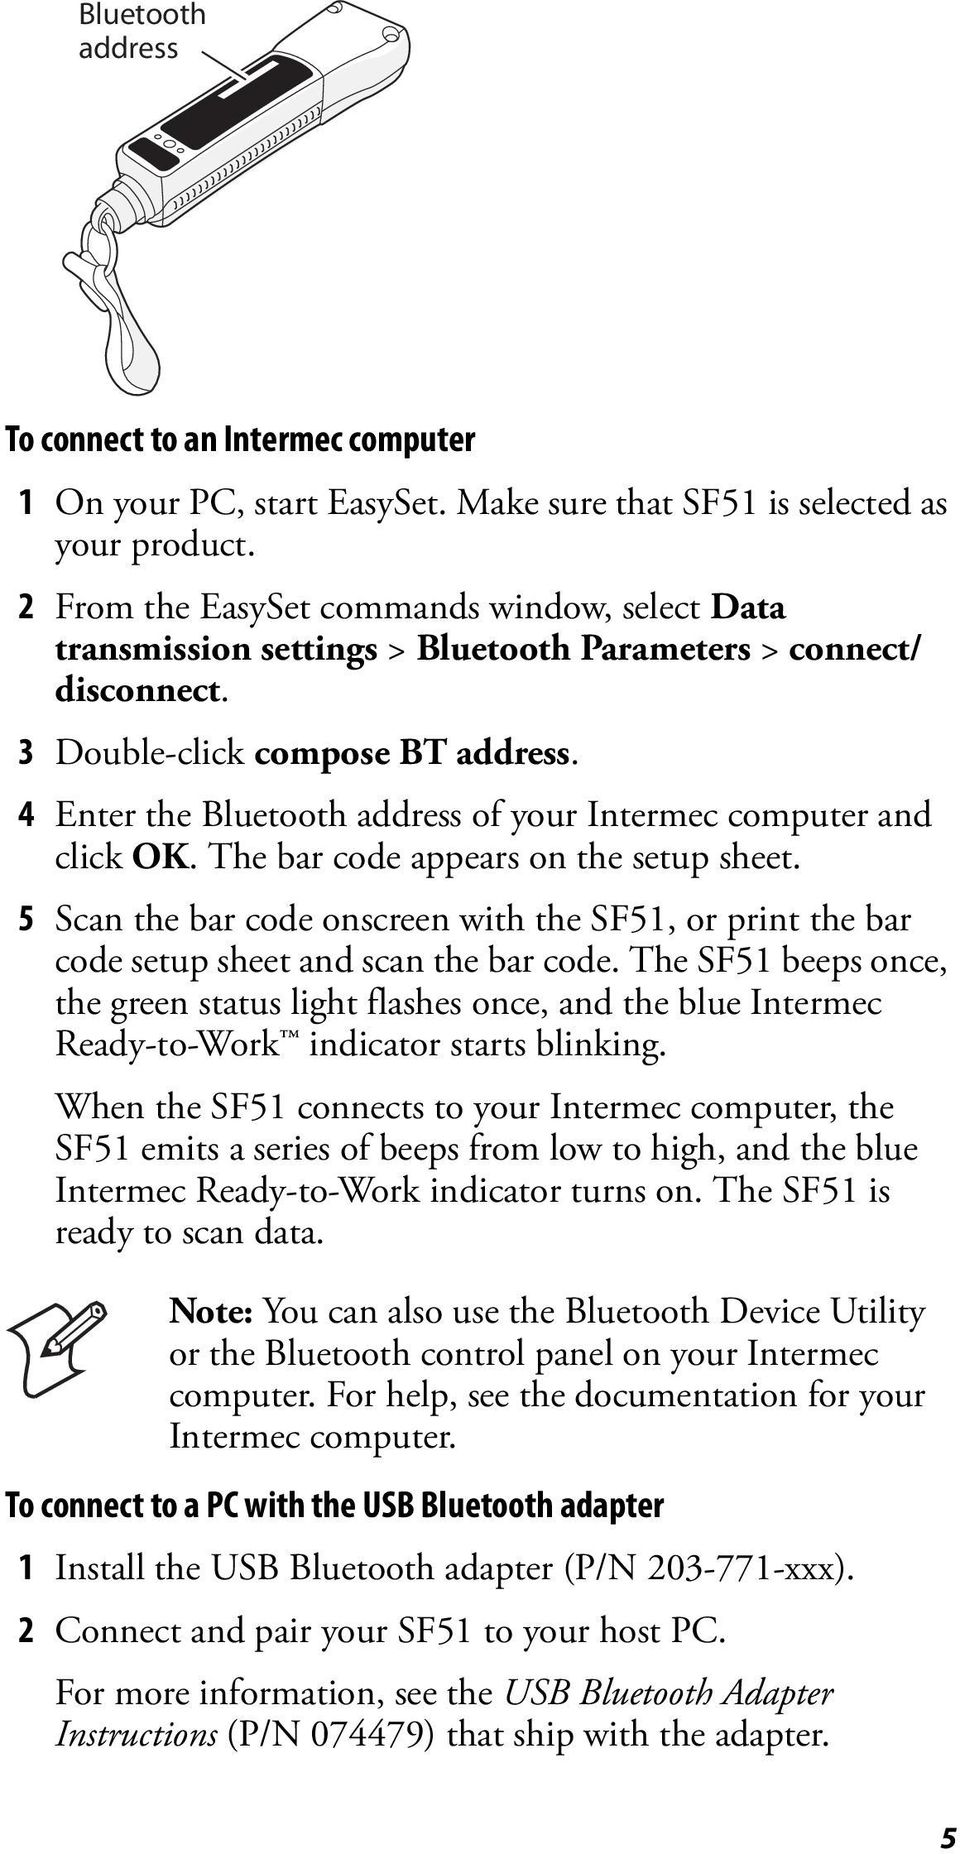 4 Enter the Bluetooth address of your Intermec computer and click OK. The bar code appears on the setup sheet.